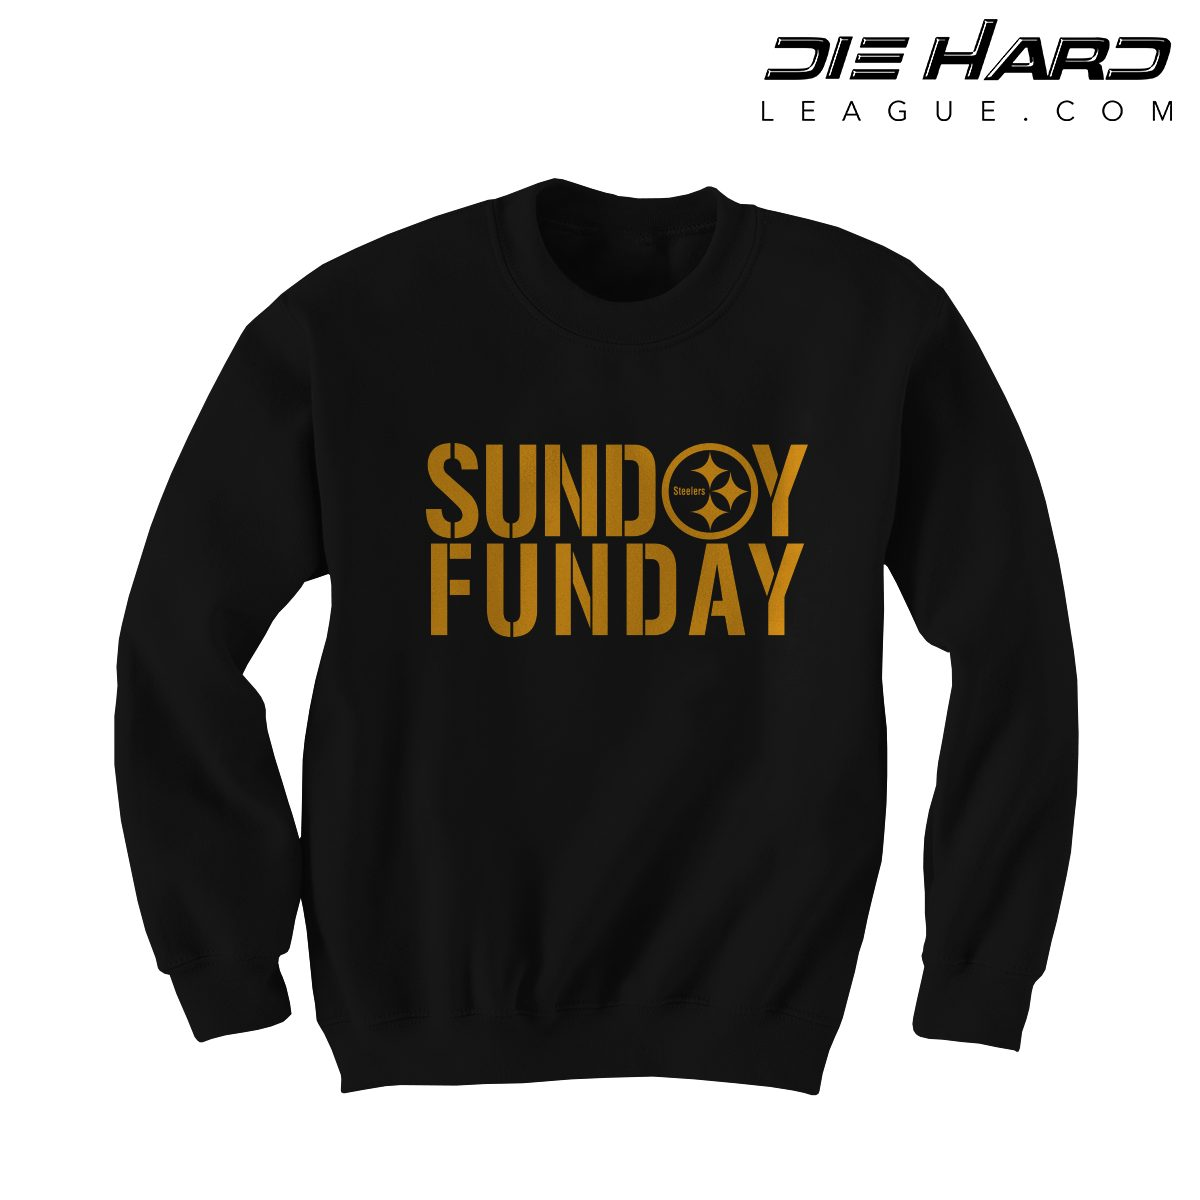 online store 9d55f 232c0 Steelers Sweatshirt Pittsburgh - Sunday Funday Black Crewneck